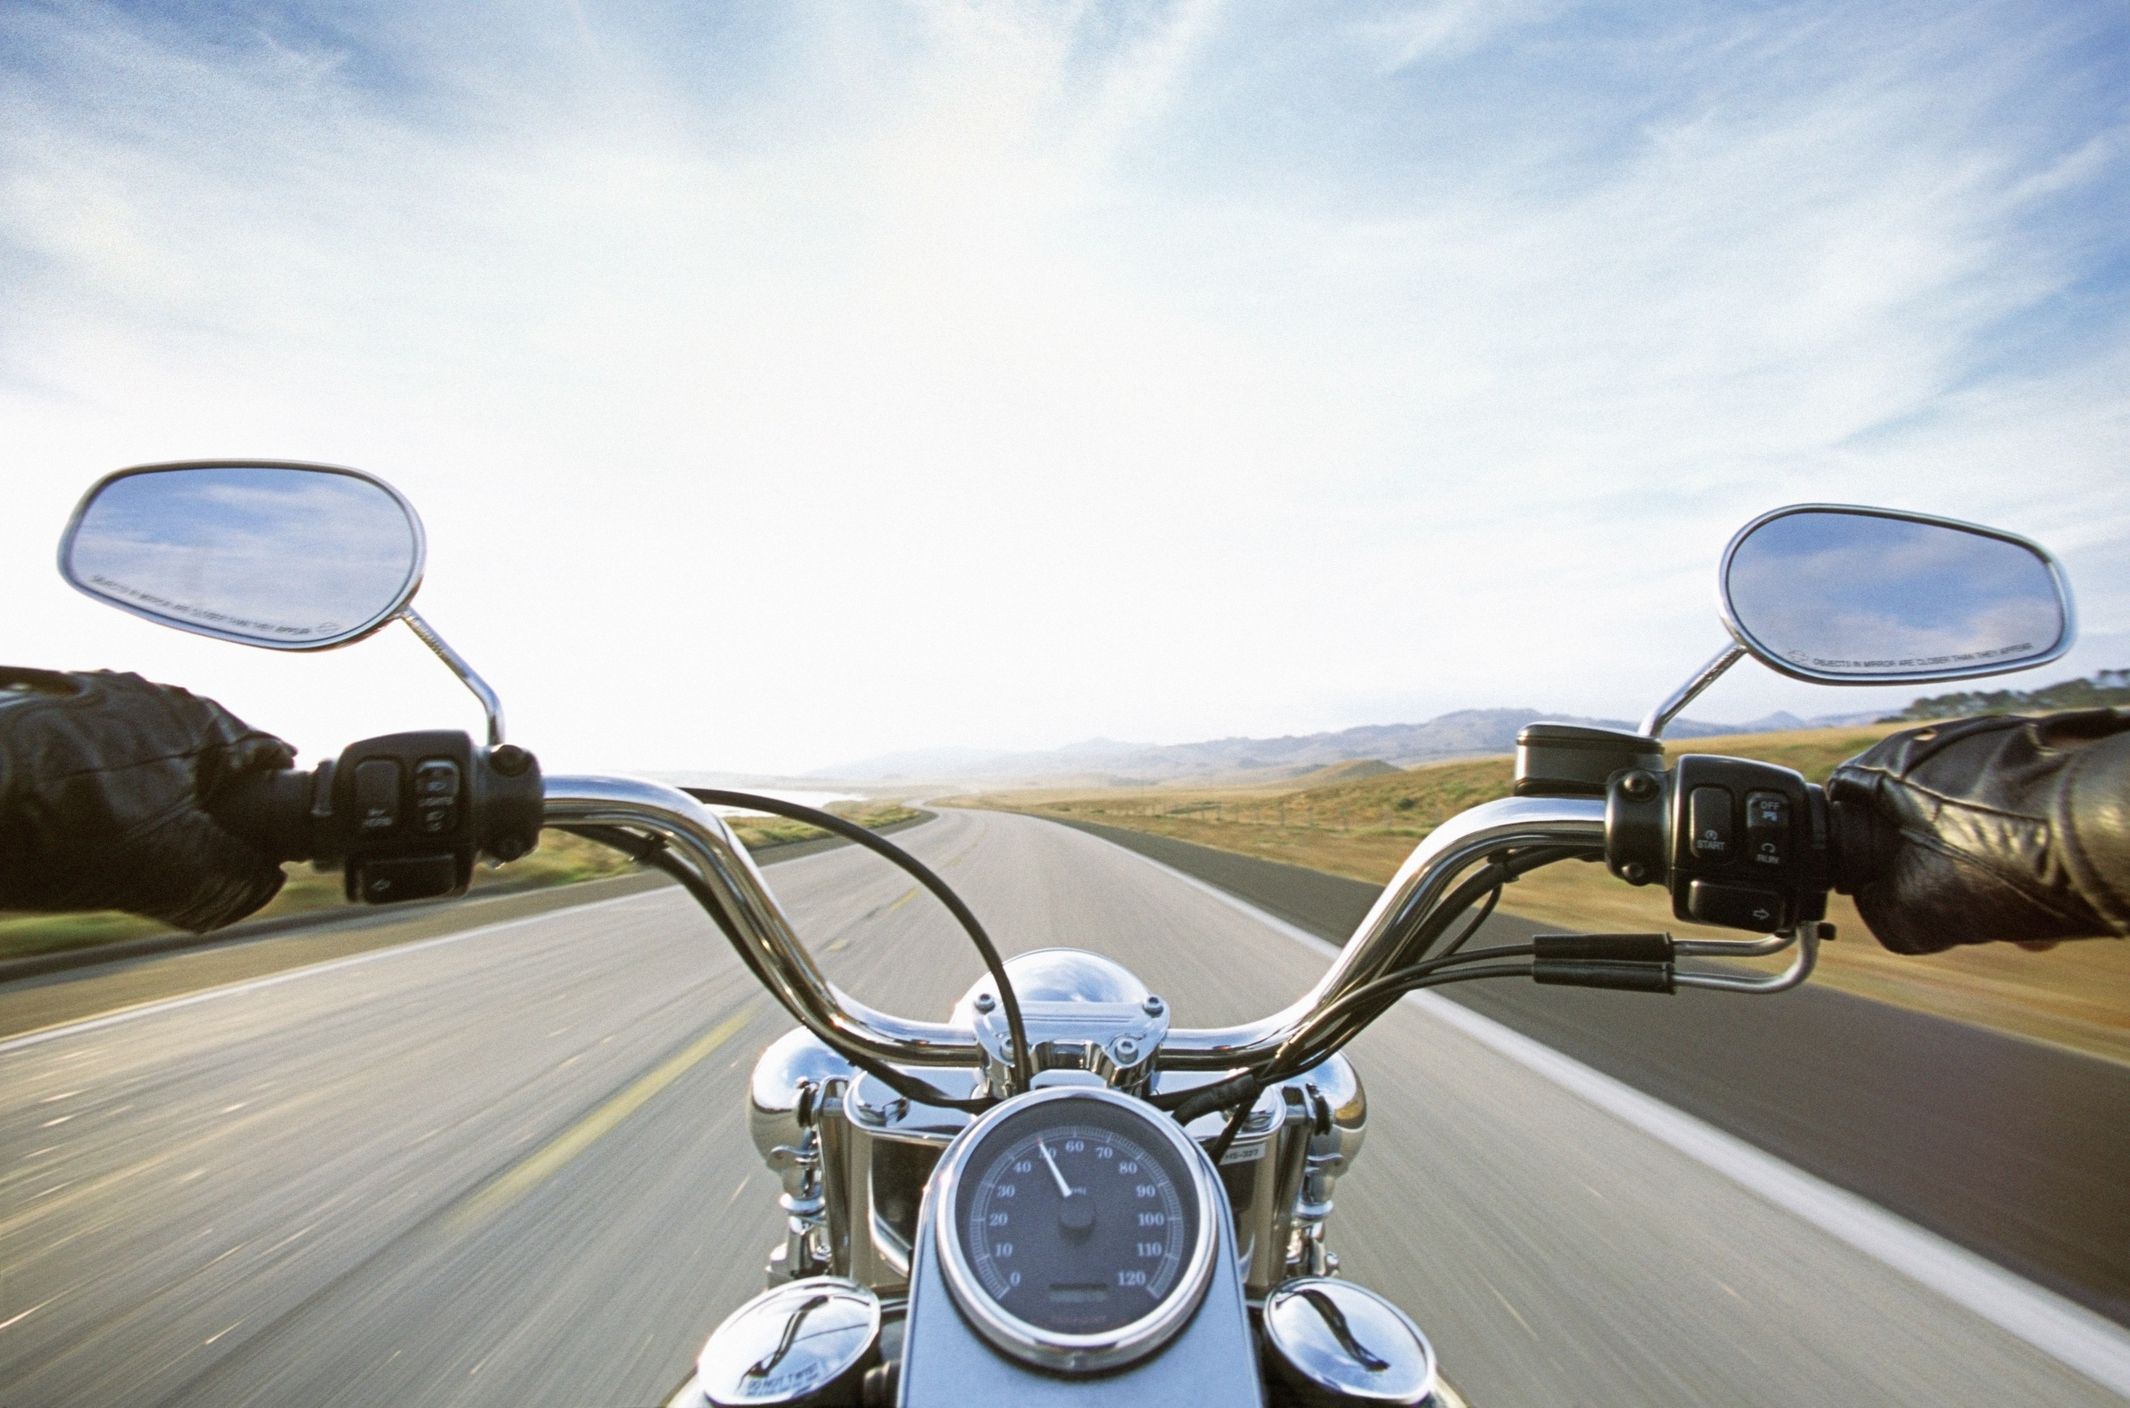 motorcycle ride road many motorcycles why vehicles